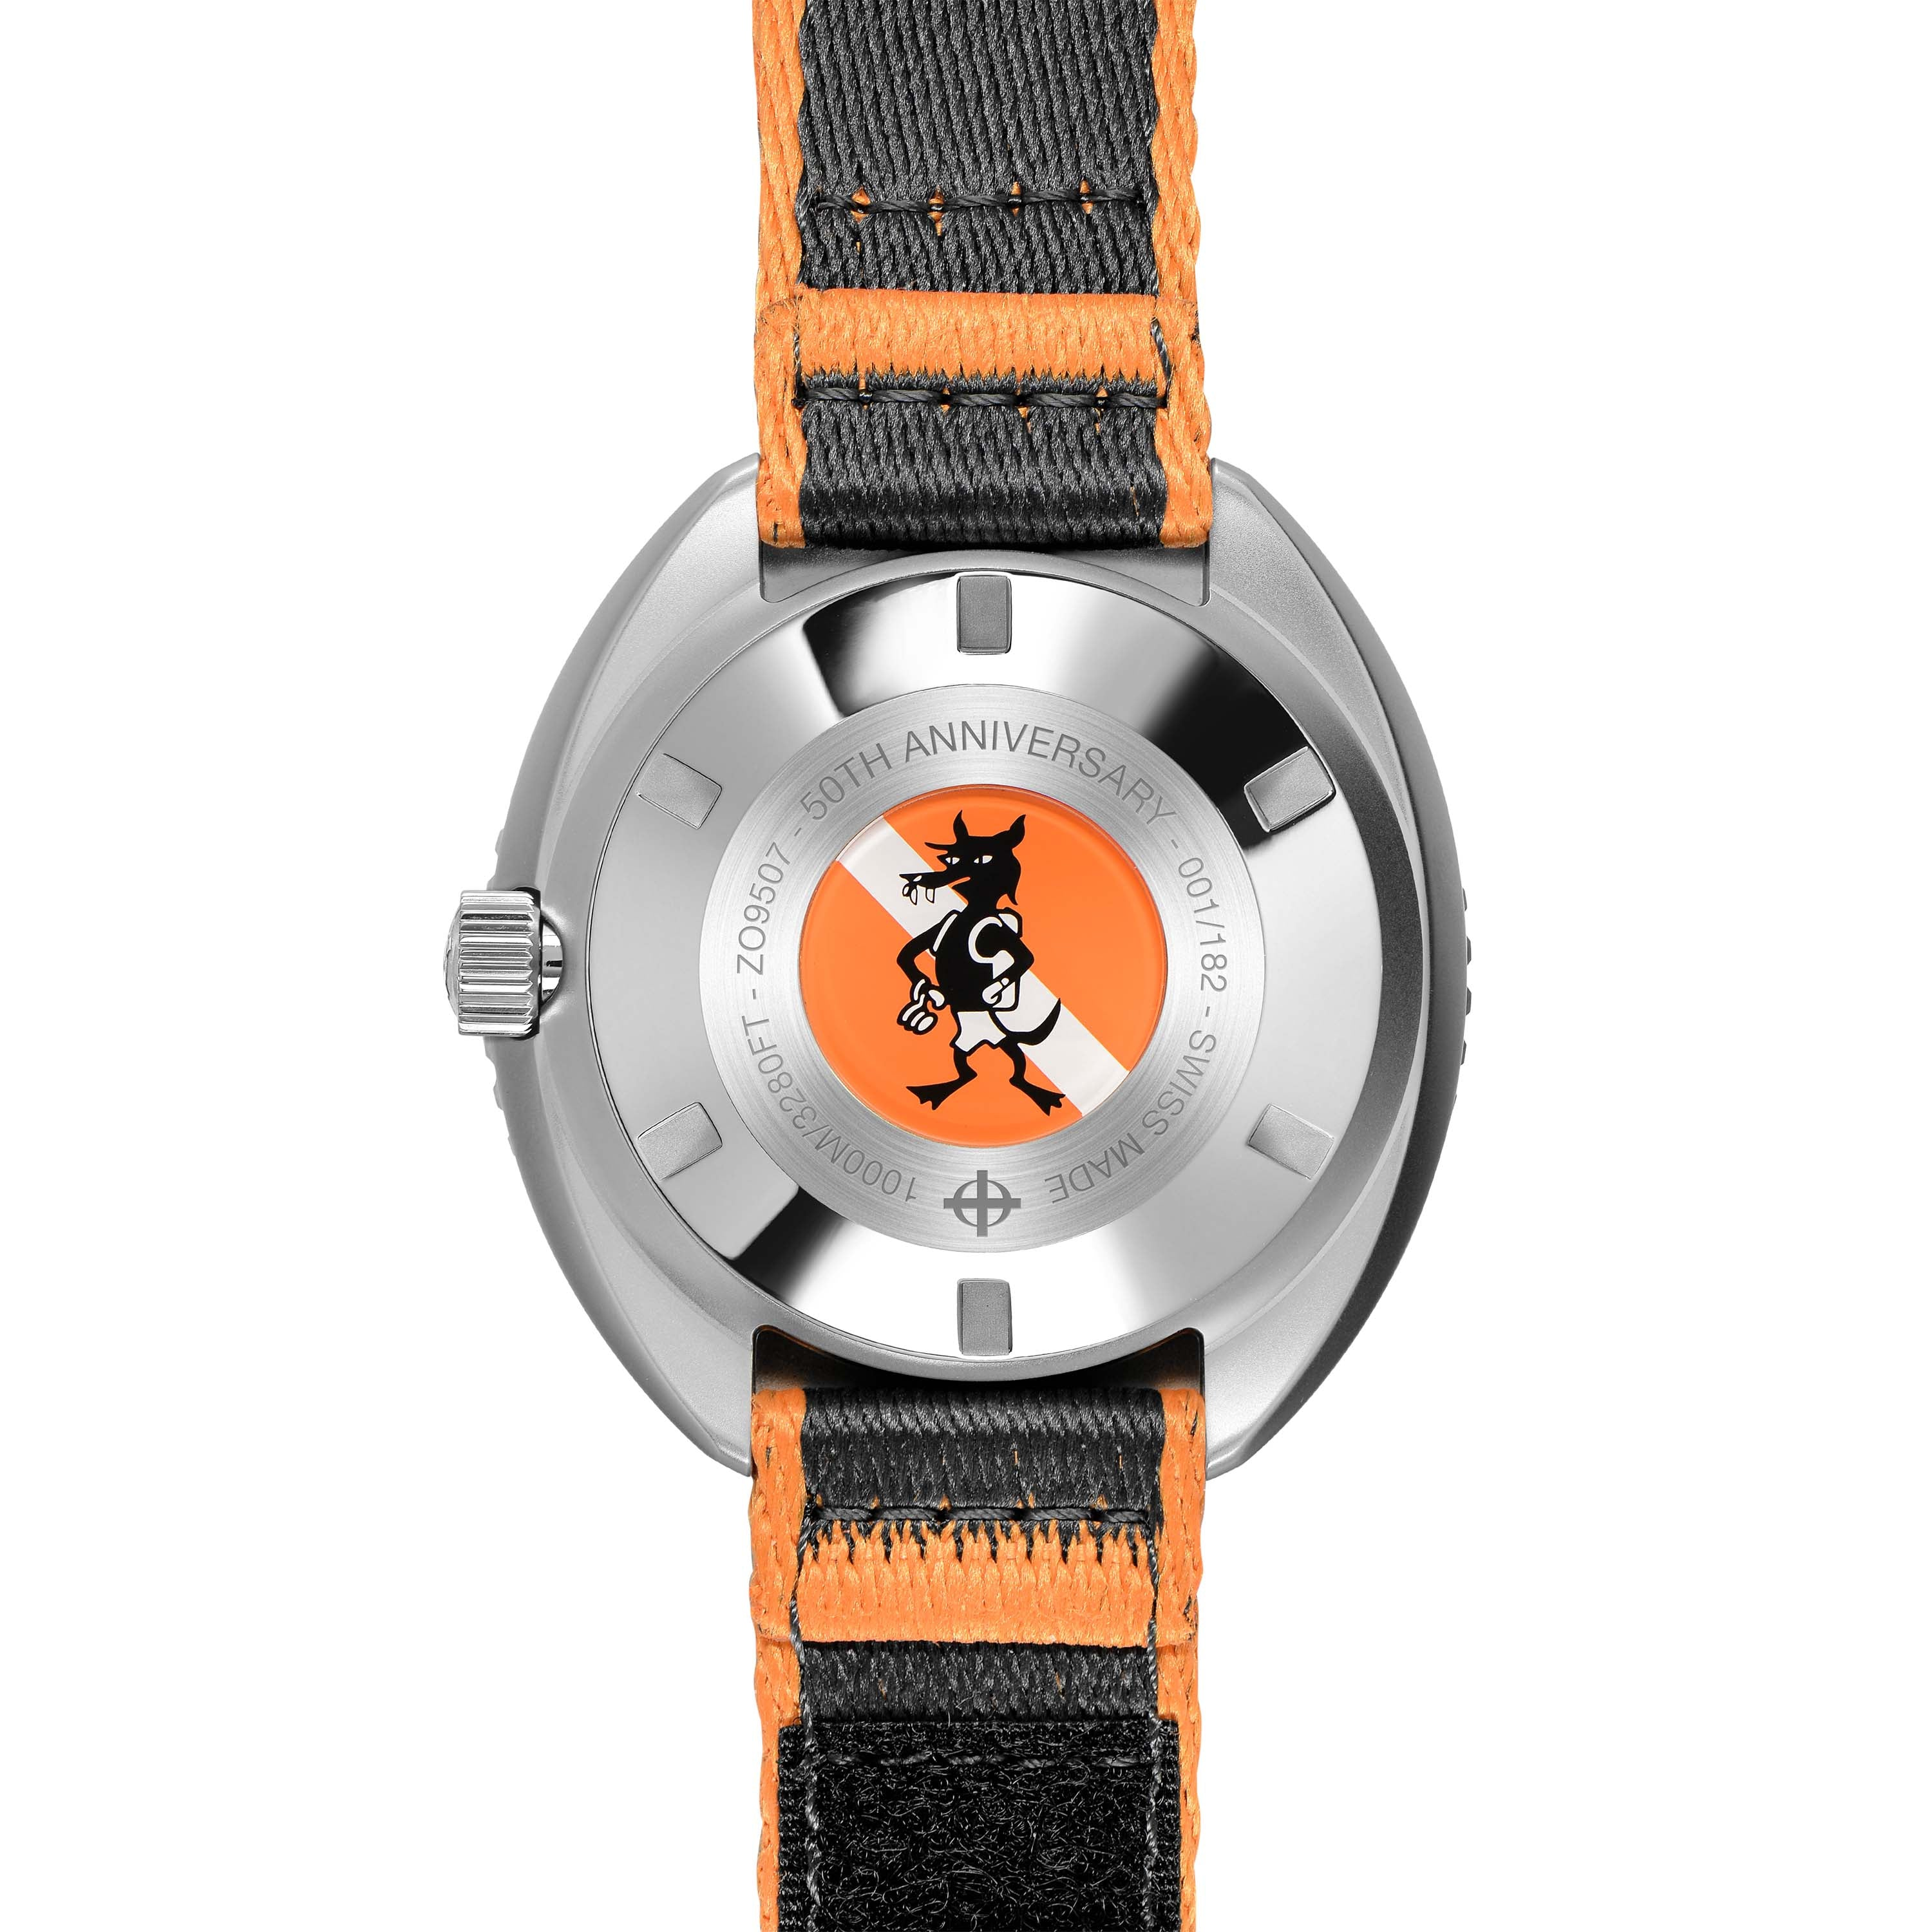 SUPER SEA WOLF 68 LIMITED EDITION 50TH ANNIVERSARY WATCH SET